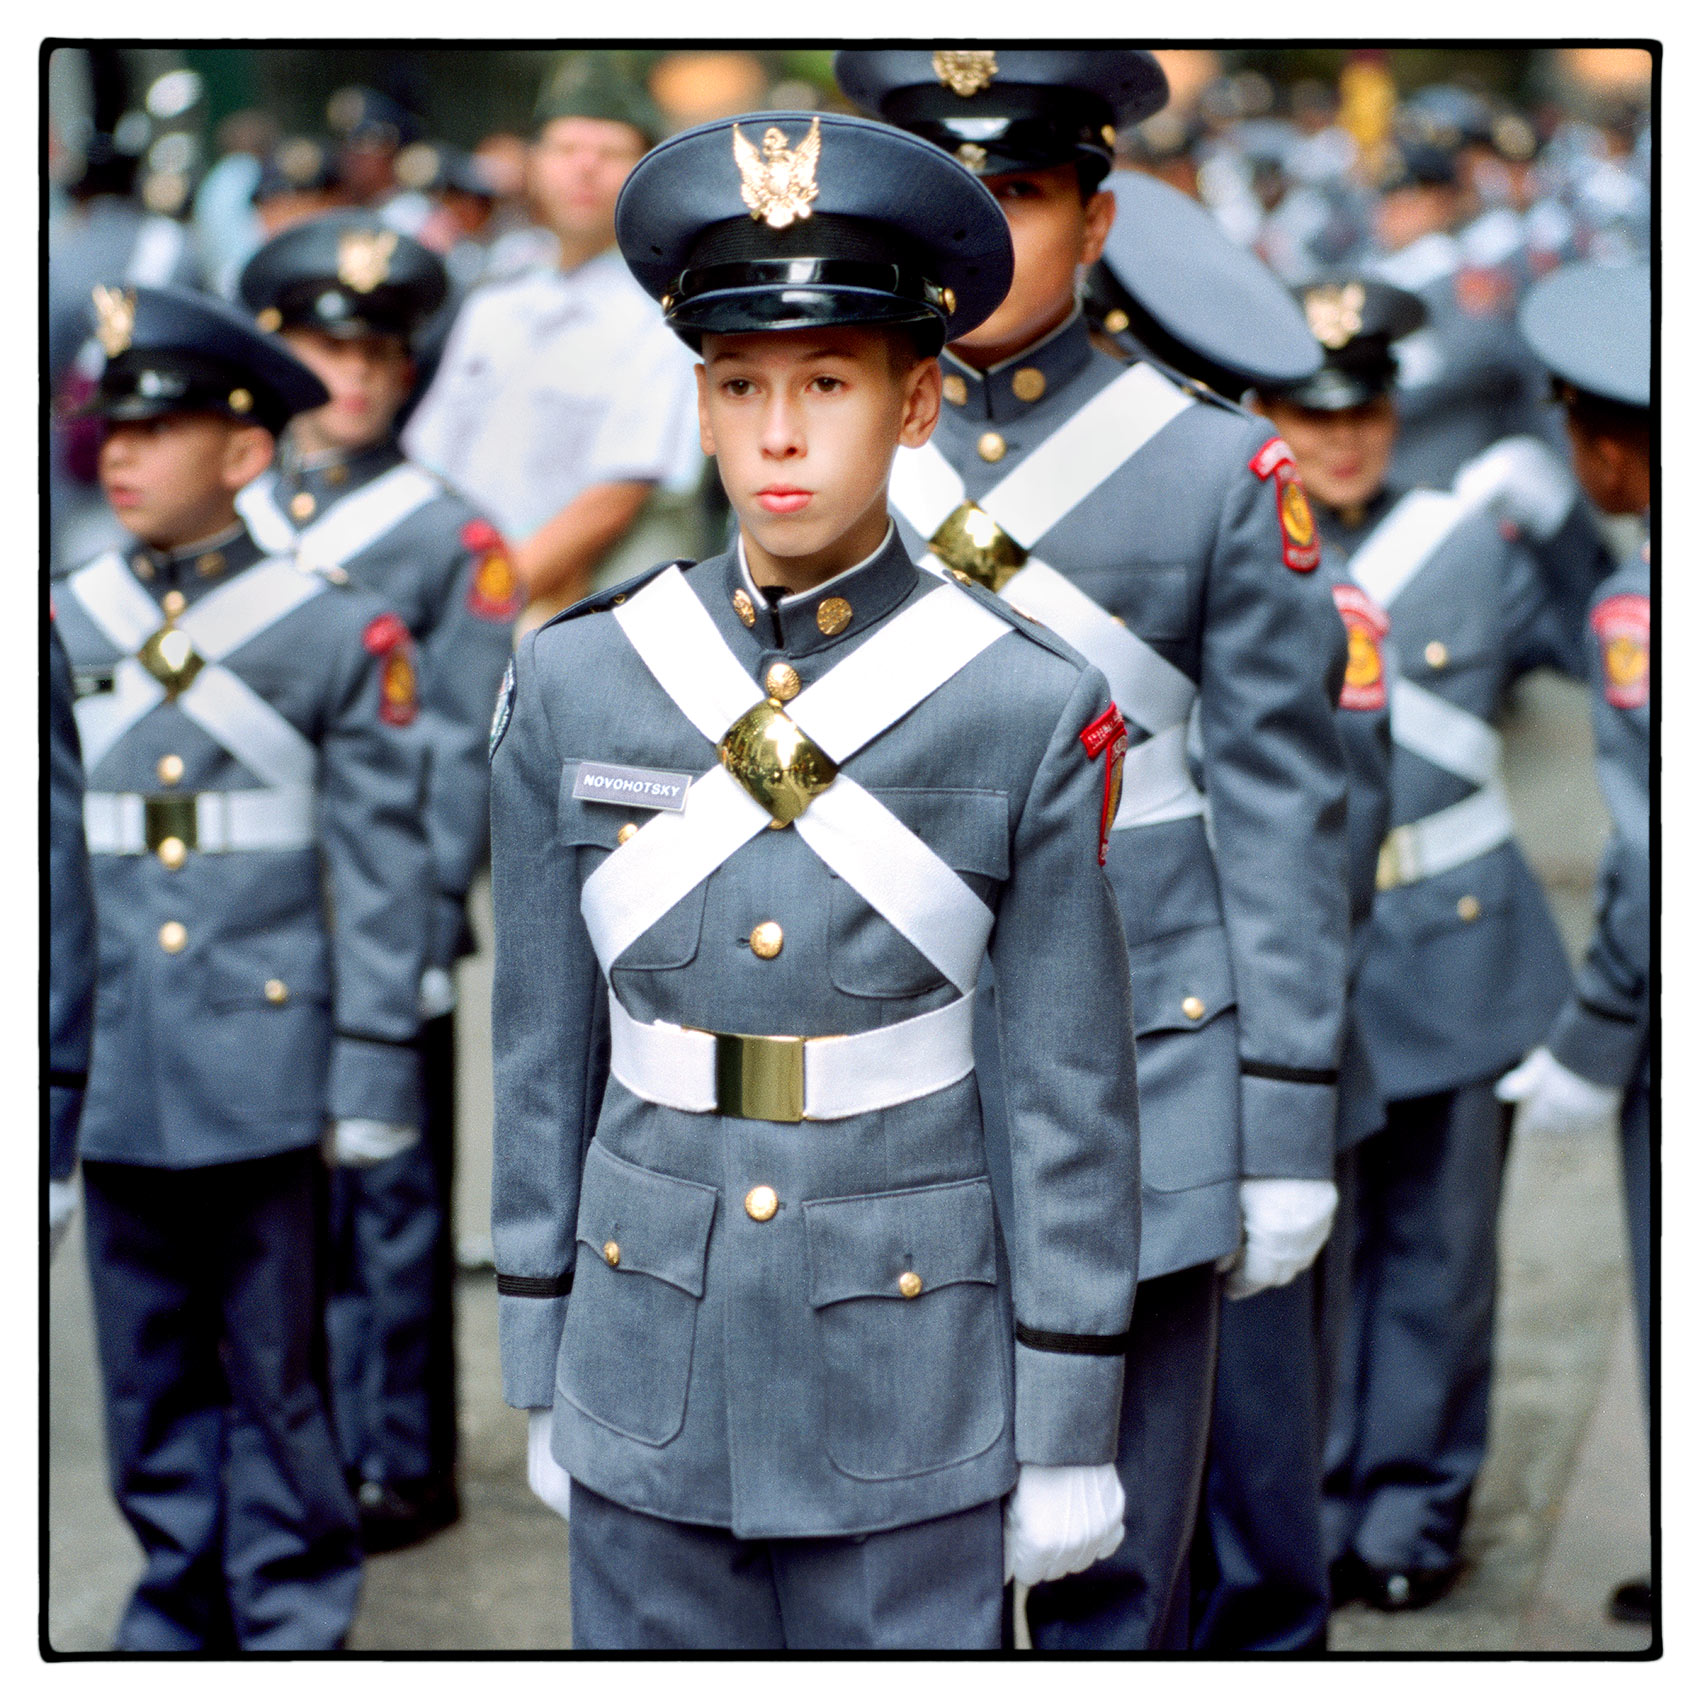 a-young-boy-from-a-private-military-school-stands-at-attention-before-the-thanksgiving-parade-in-new-york-city